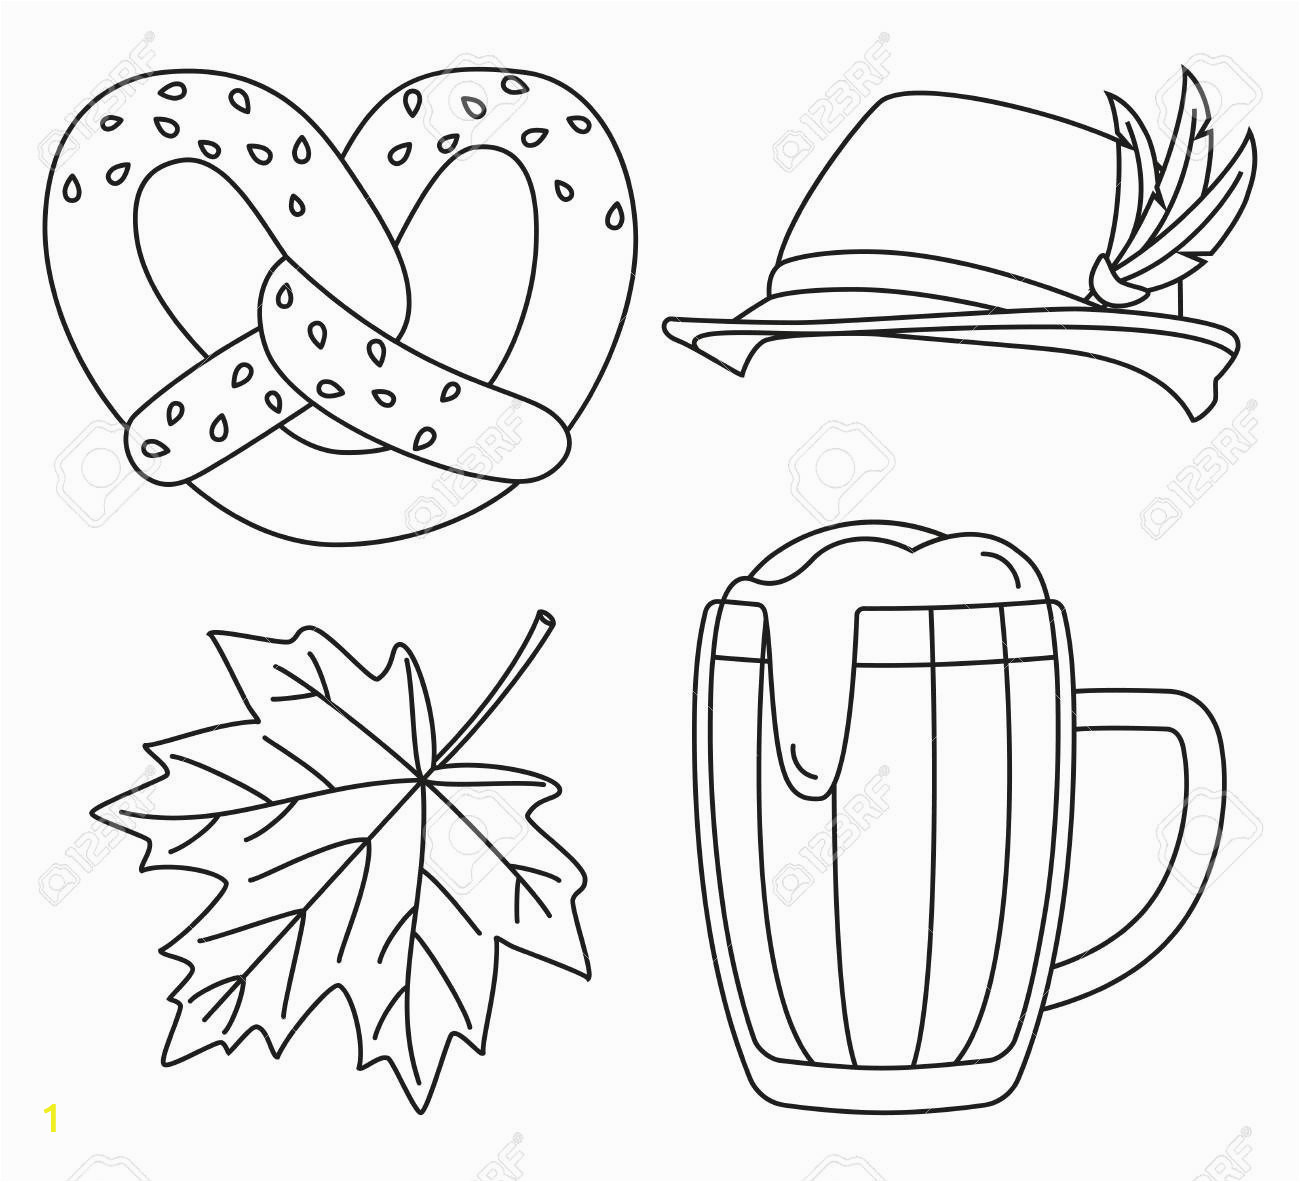 sausage party coloring book fresh line art black and white 4 oktoberfest elements set beer festival of sausage party coloring book